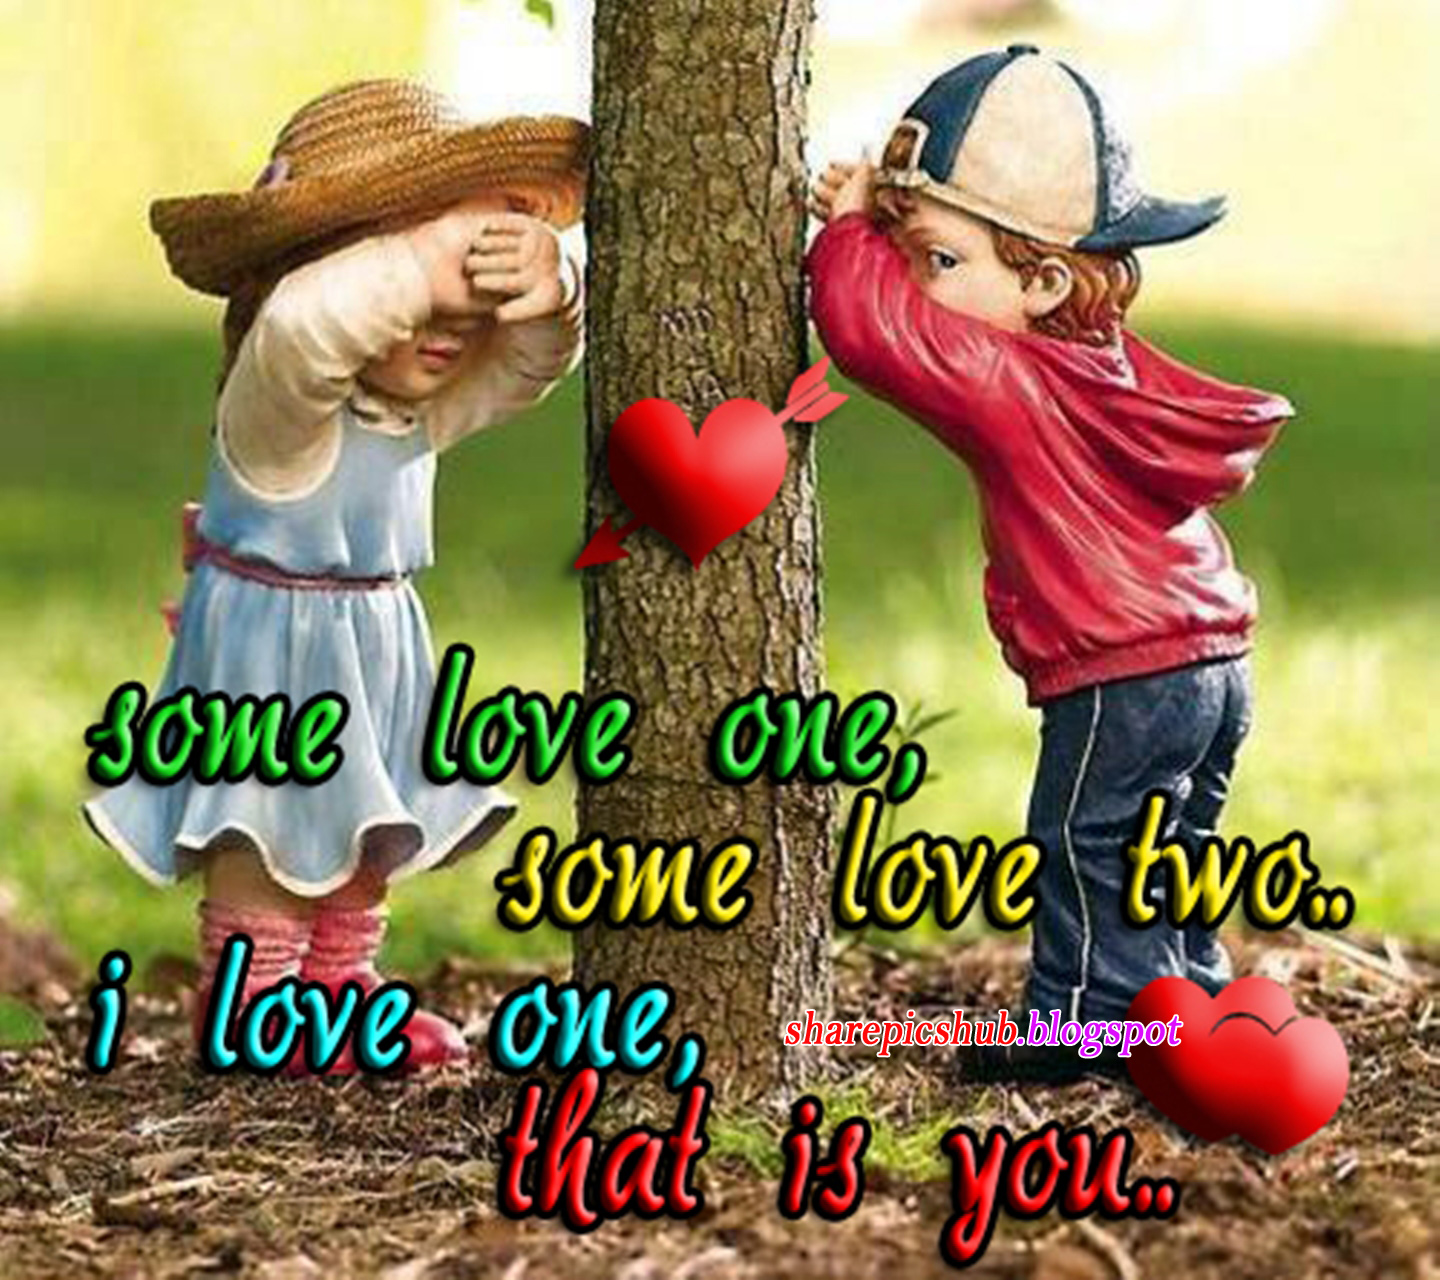 I Love Just You Romantic Quote HD Wallpaper For Android Phones Share Pics Hub